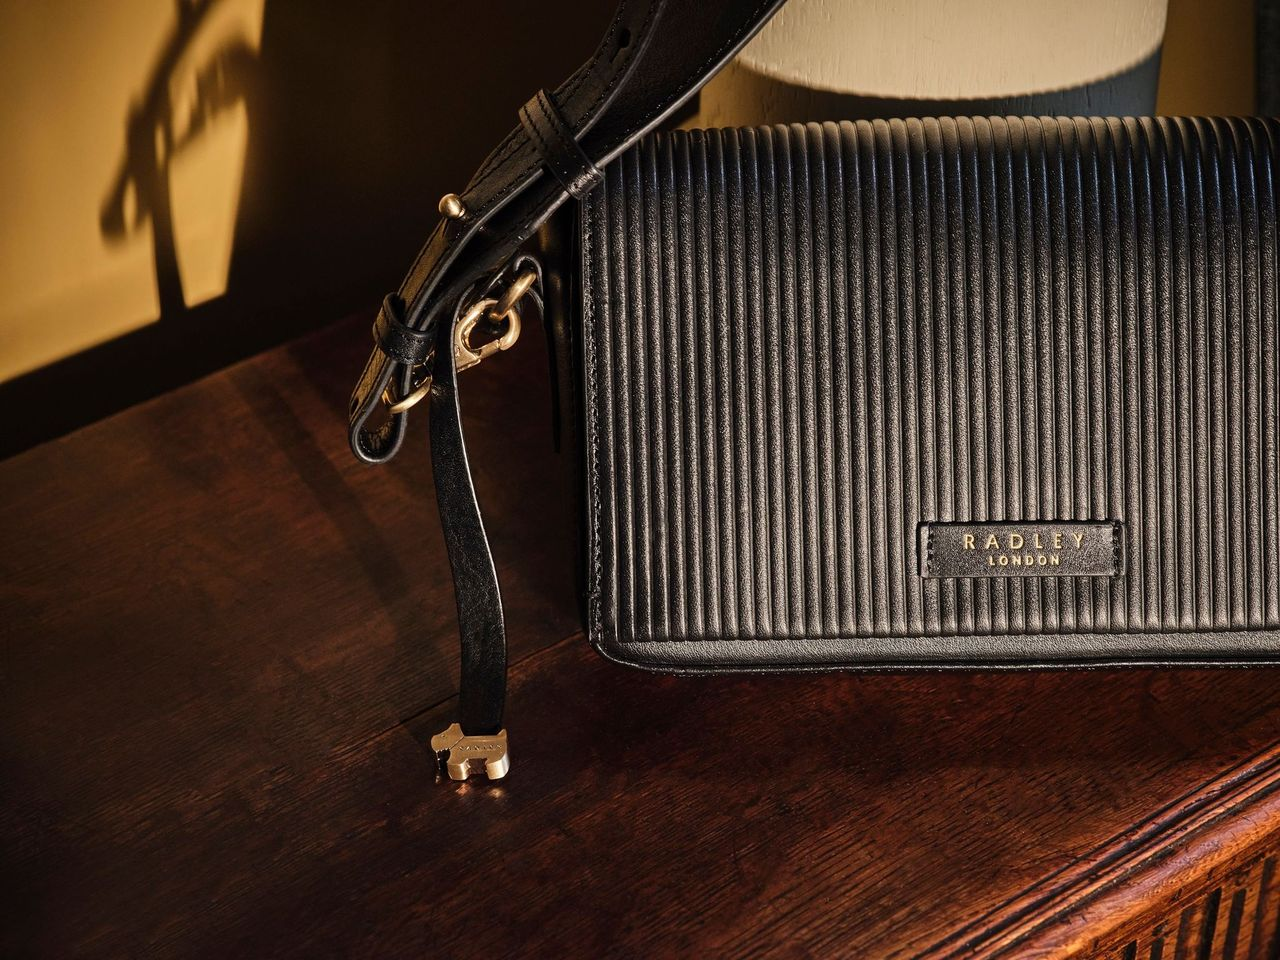 Discover the NEW collection from Radley London